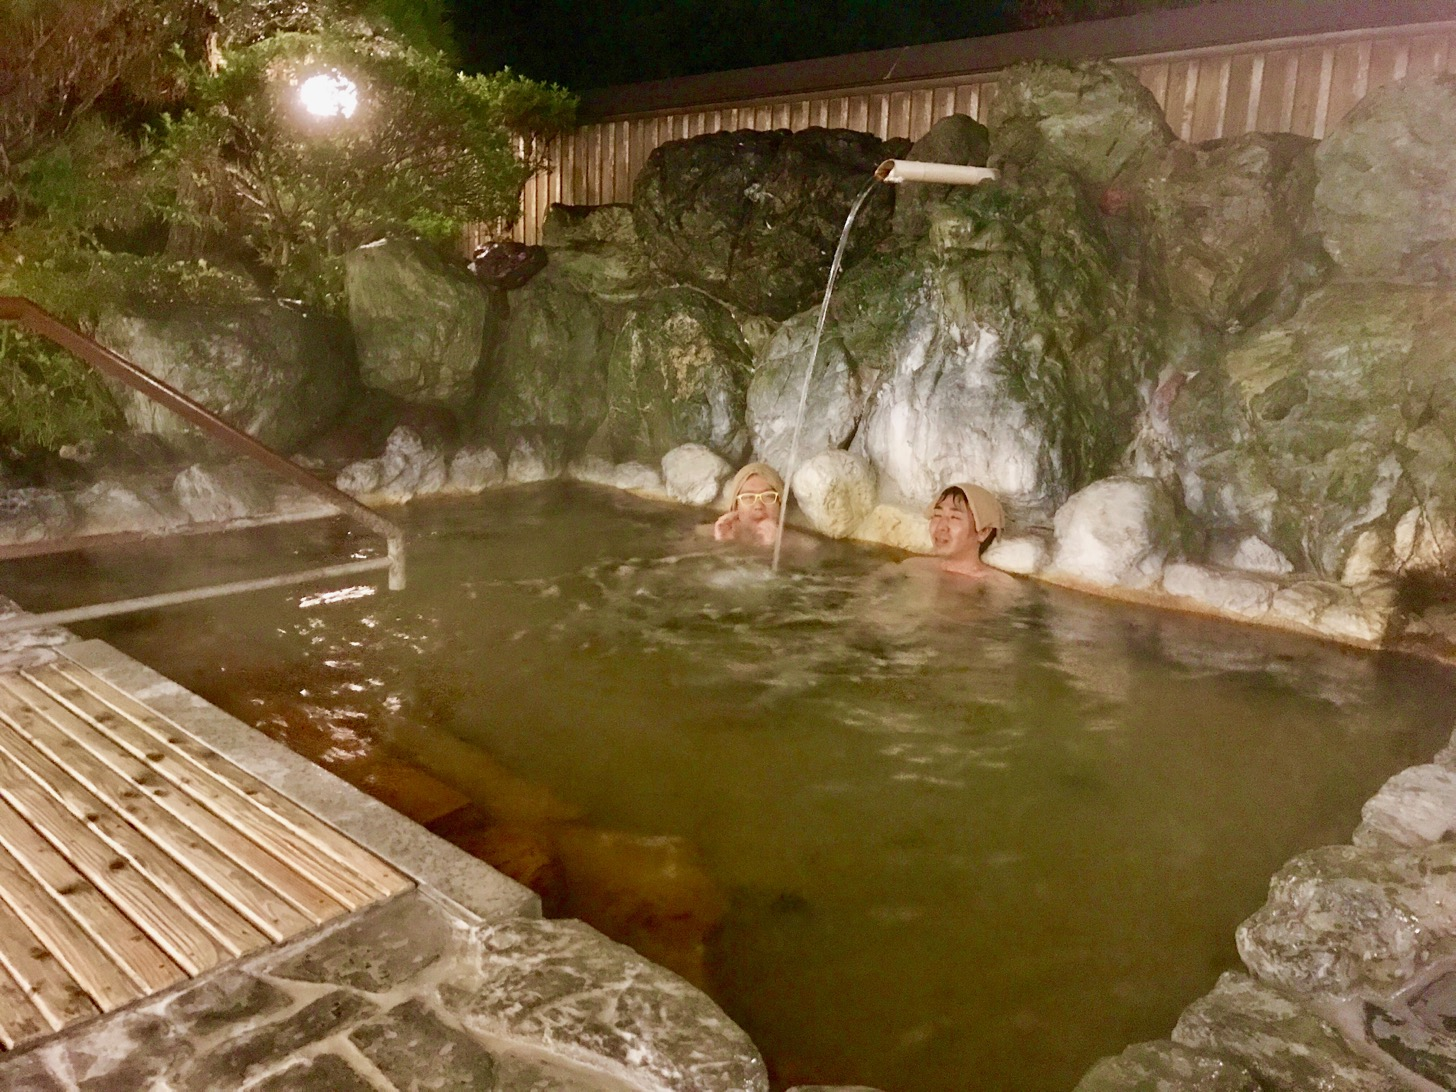 [Accommodation note] Oku Ise Forestpia Miyagawa Sanso is a base hotel for staying in Odai-cho with French cuisine and a one-day hot spring # Odai-cho PR